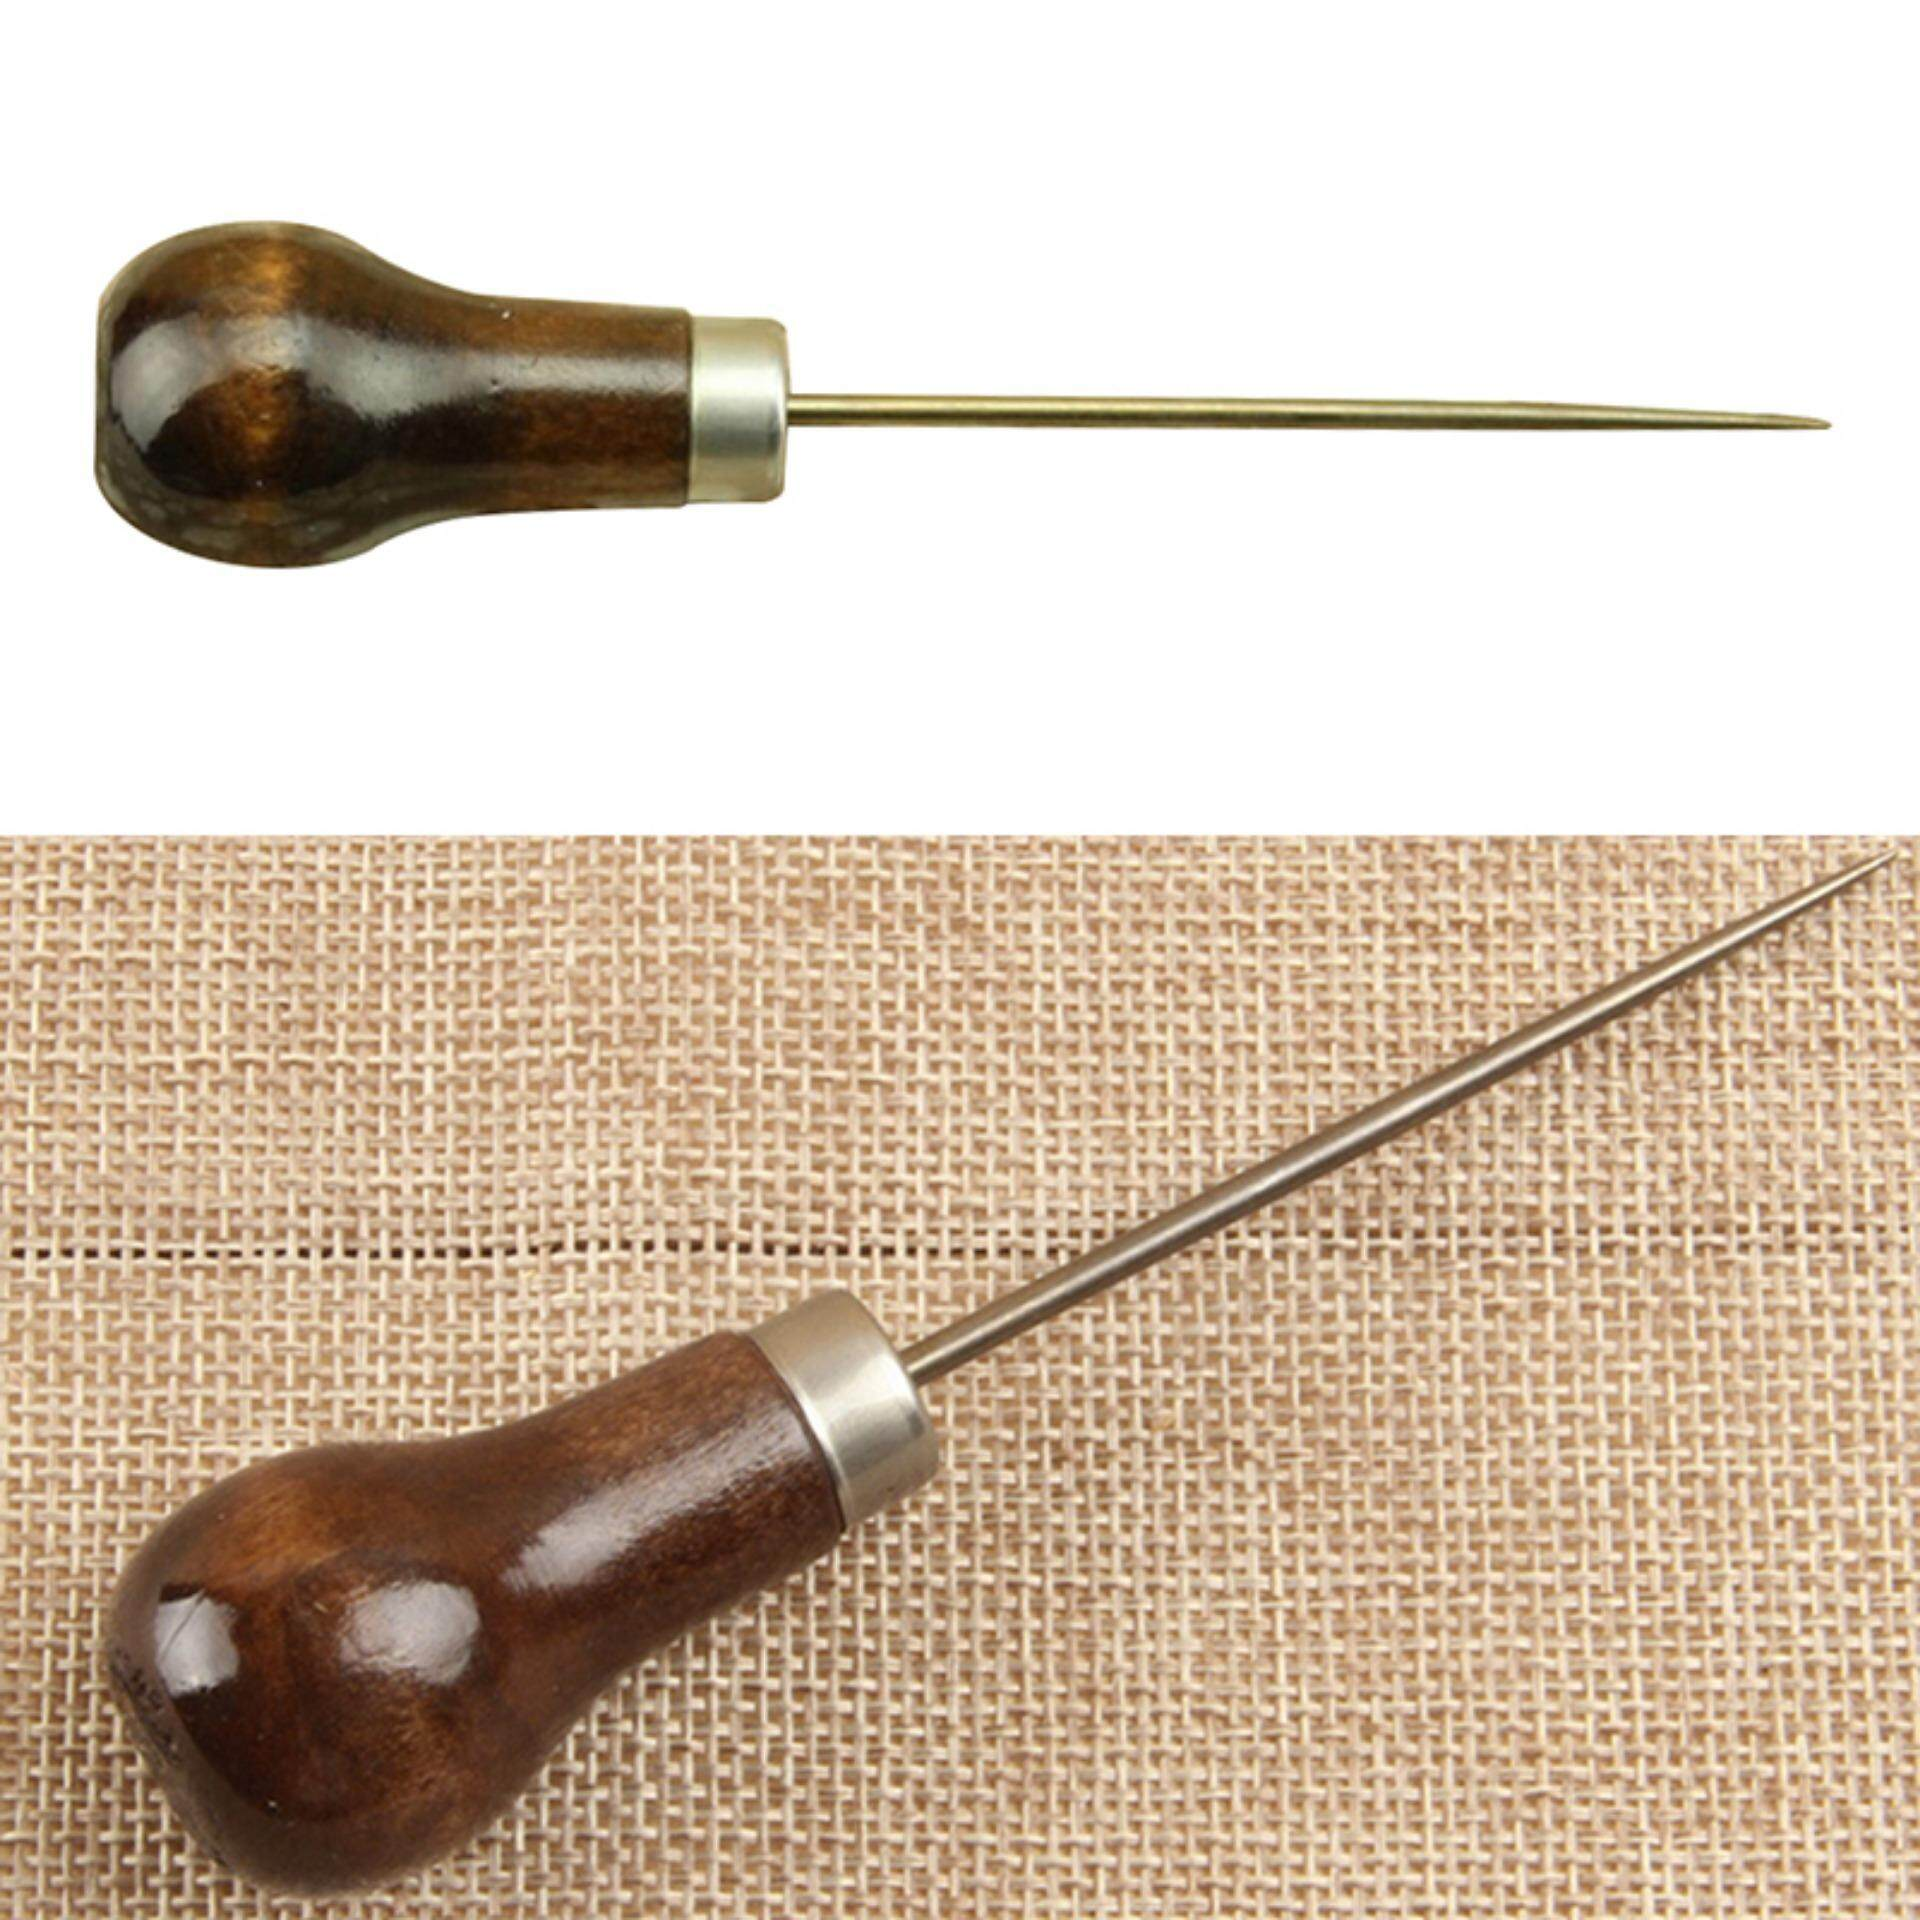 Canvas Leather Tent Sewing Awl Hand Stitcher Stiching Leather Craft Needle Tool